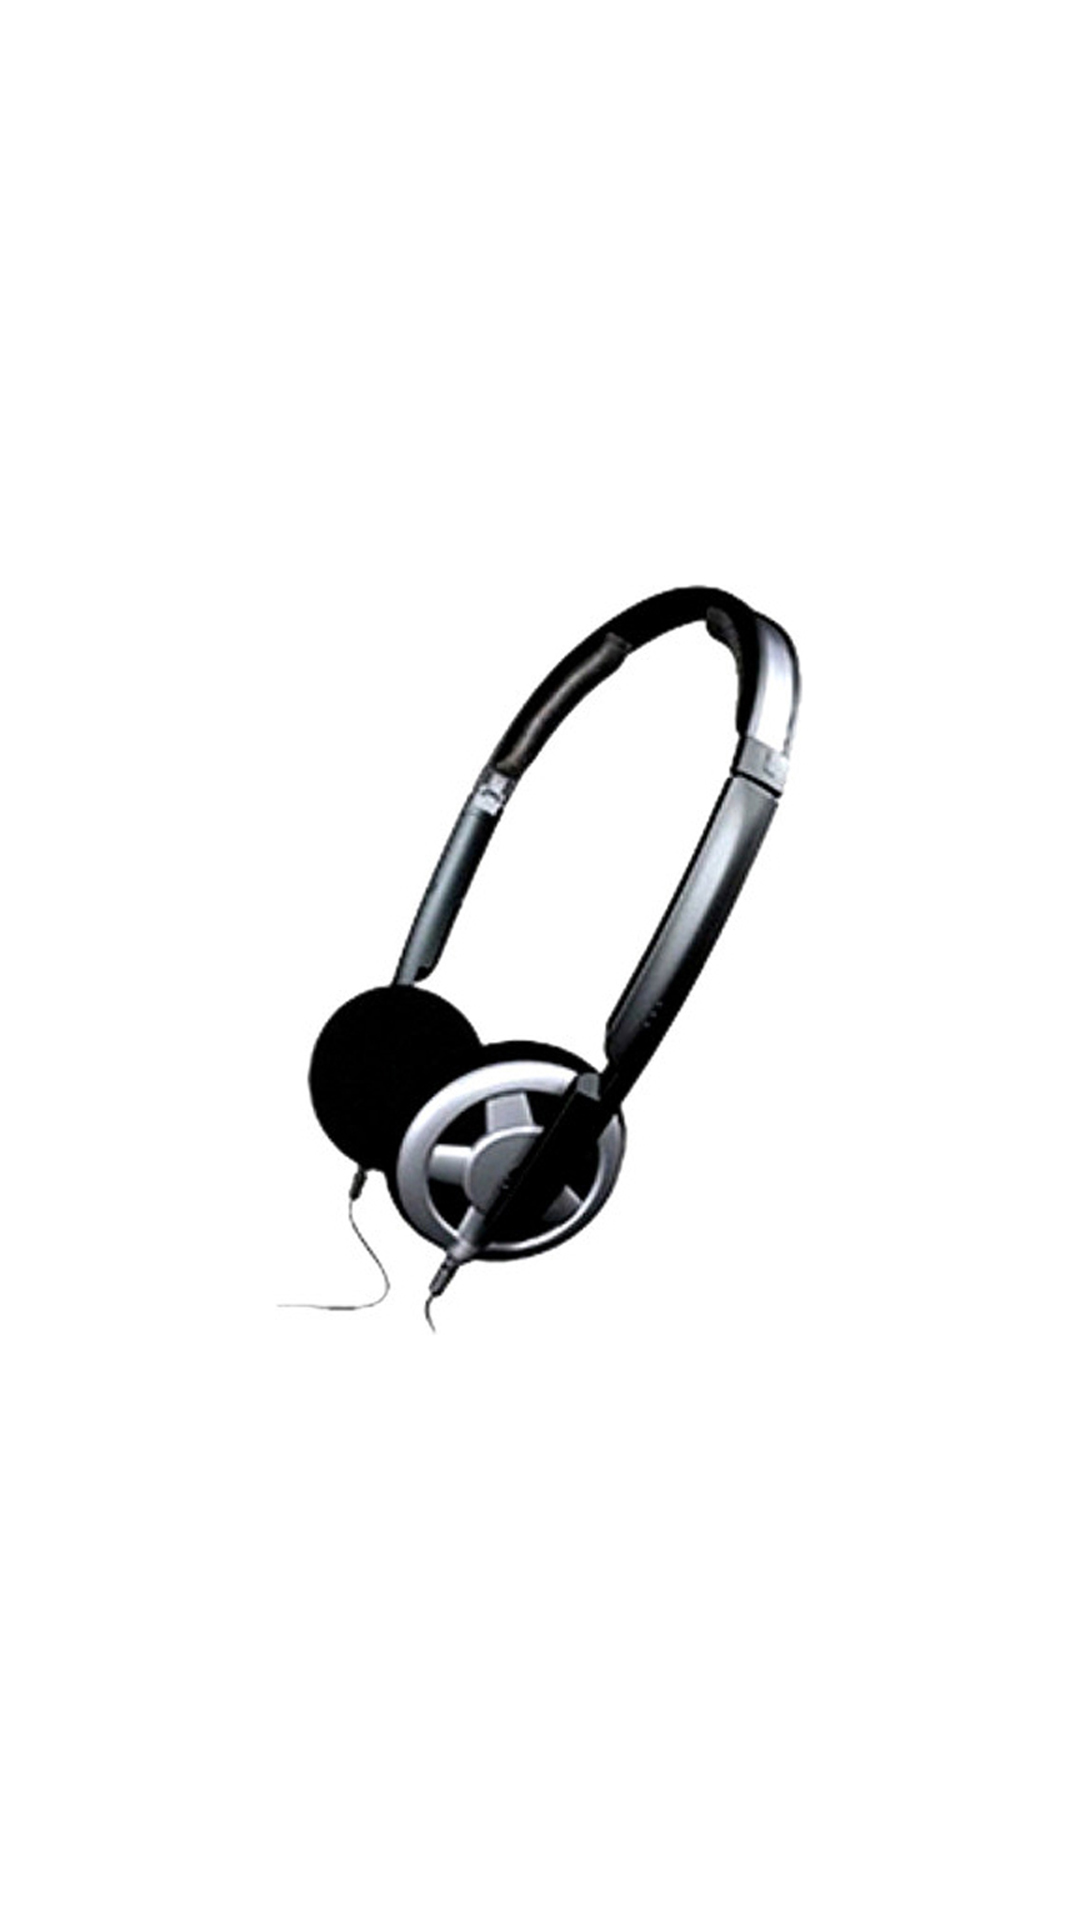 Buy Sennheiser Px 80 Wired On Ear Headset Black Amp Silver Online At Low Prices In India